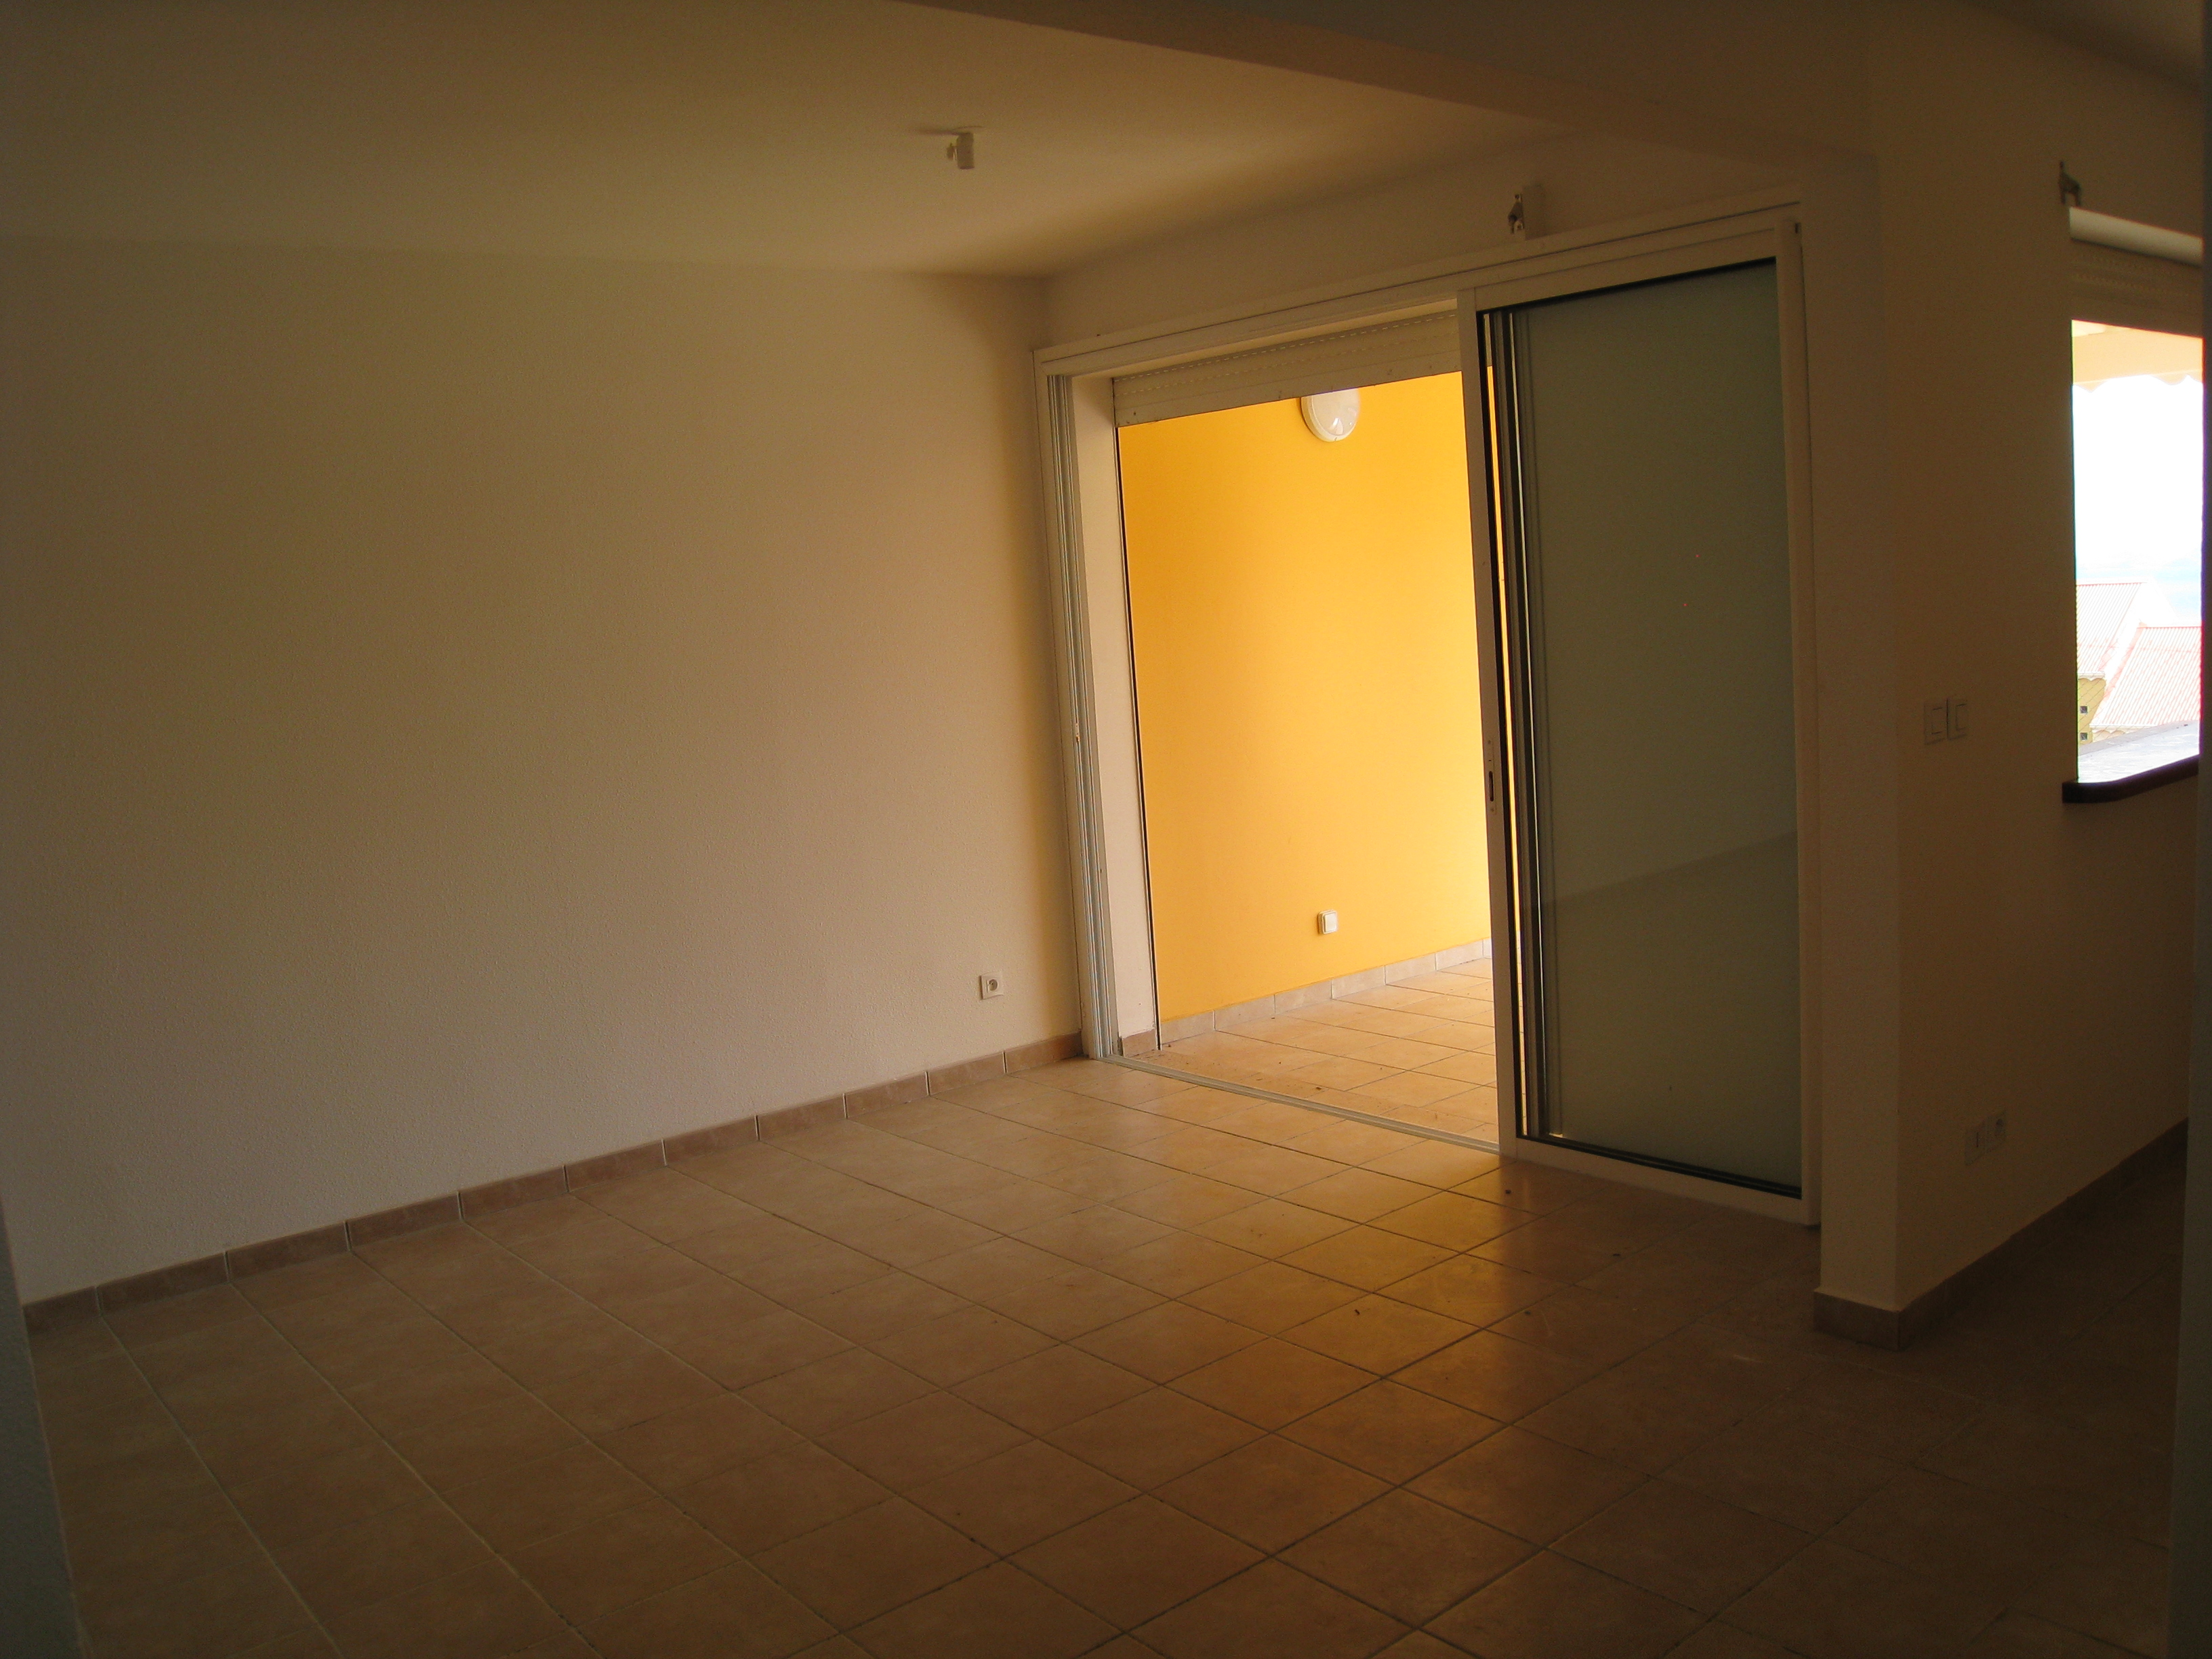 Location appartement gourbeyre 97113 guadeloupe basse for Achat location appartement